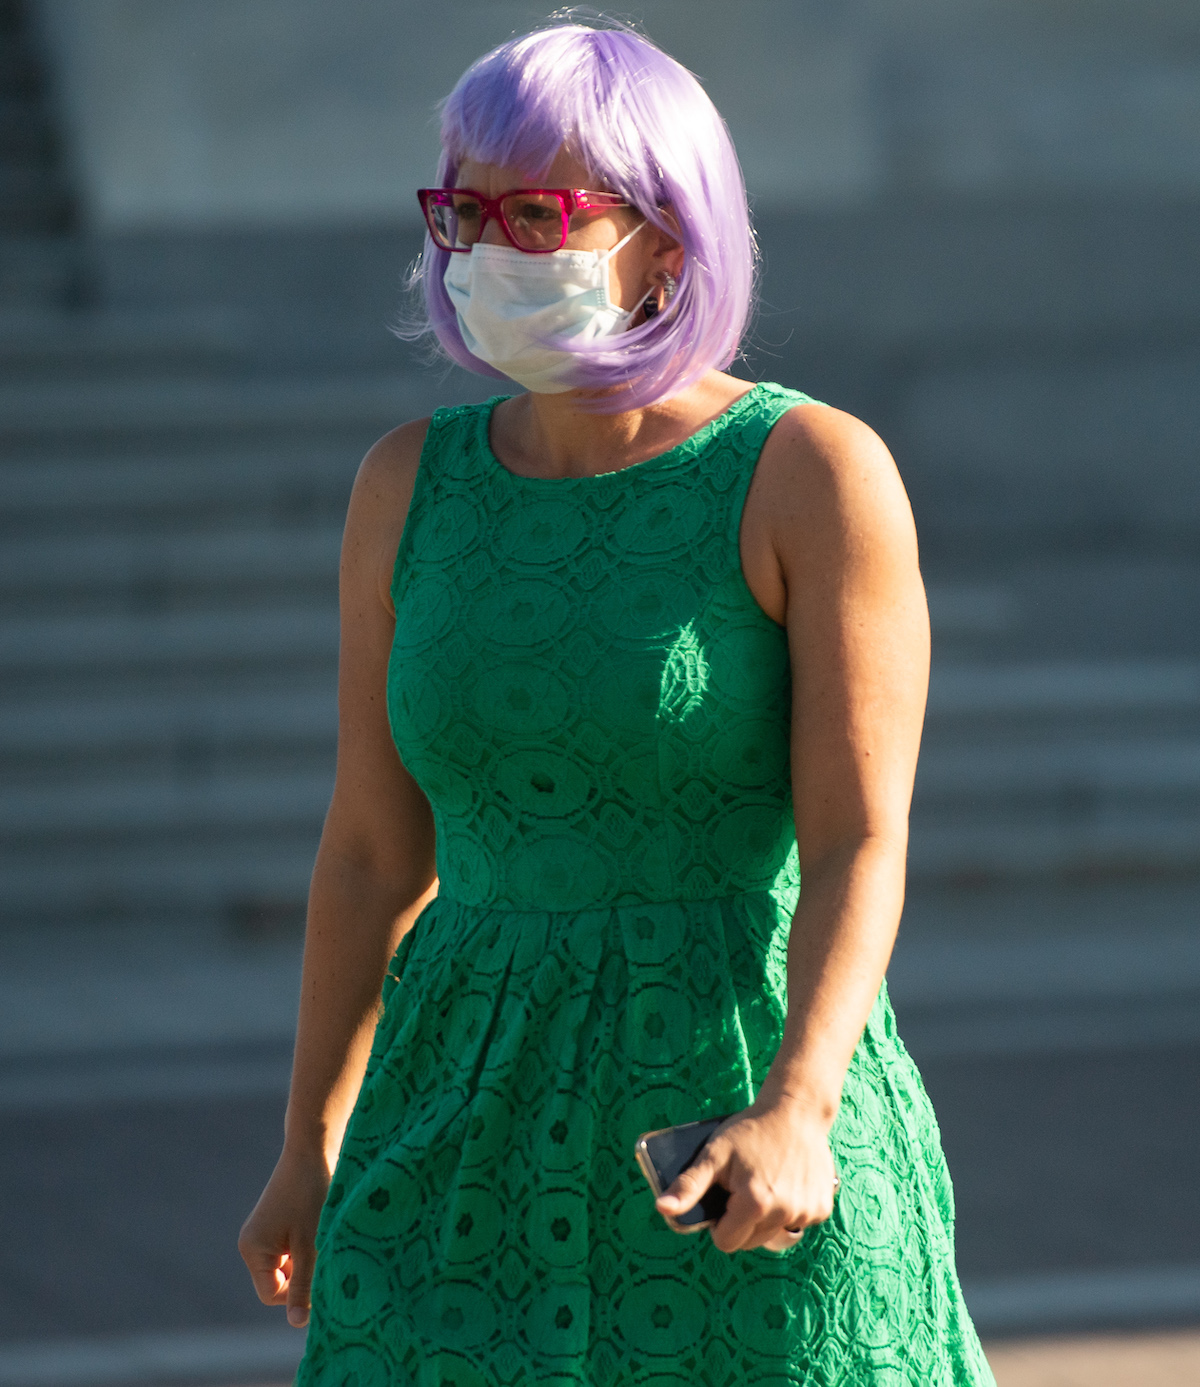 US Senator Kyrsten Sinema (D-AZ) wearing a mask to protect herself and others from COVID-19, known as coronavirus, leaves following a vote at the US Capitol in Washington, DC, May 4, 2020. (Photo by SAUL LOEB/AFP via Getty Images)